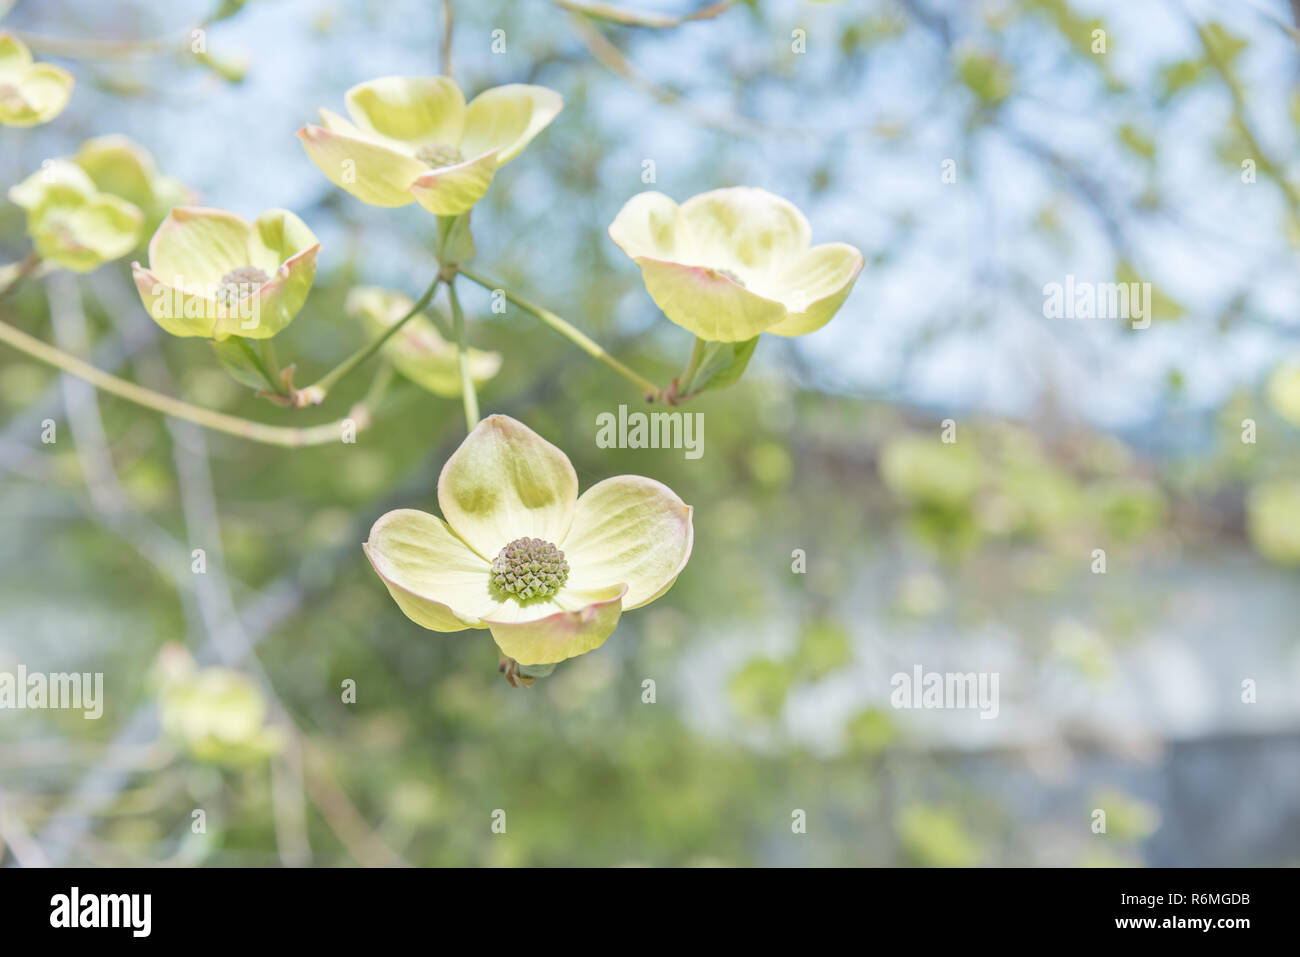 Close Up White Dogwood Flower On Branch In Springtime Stock Photo